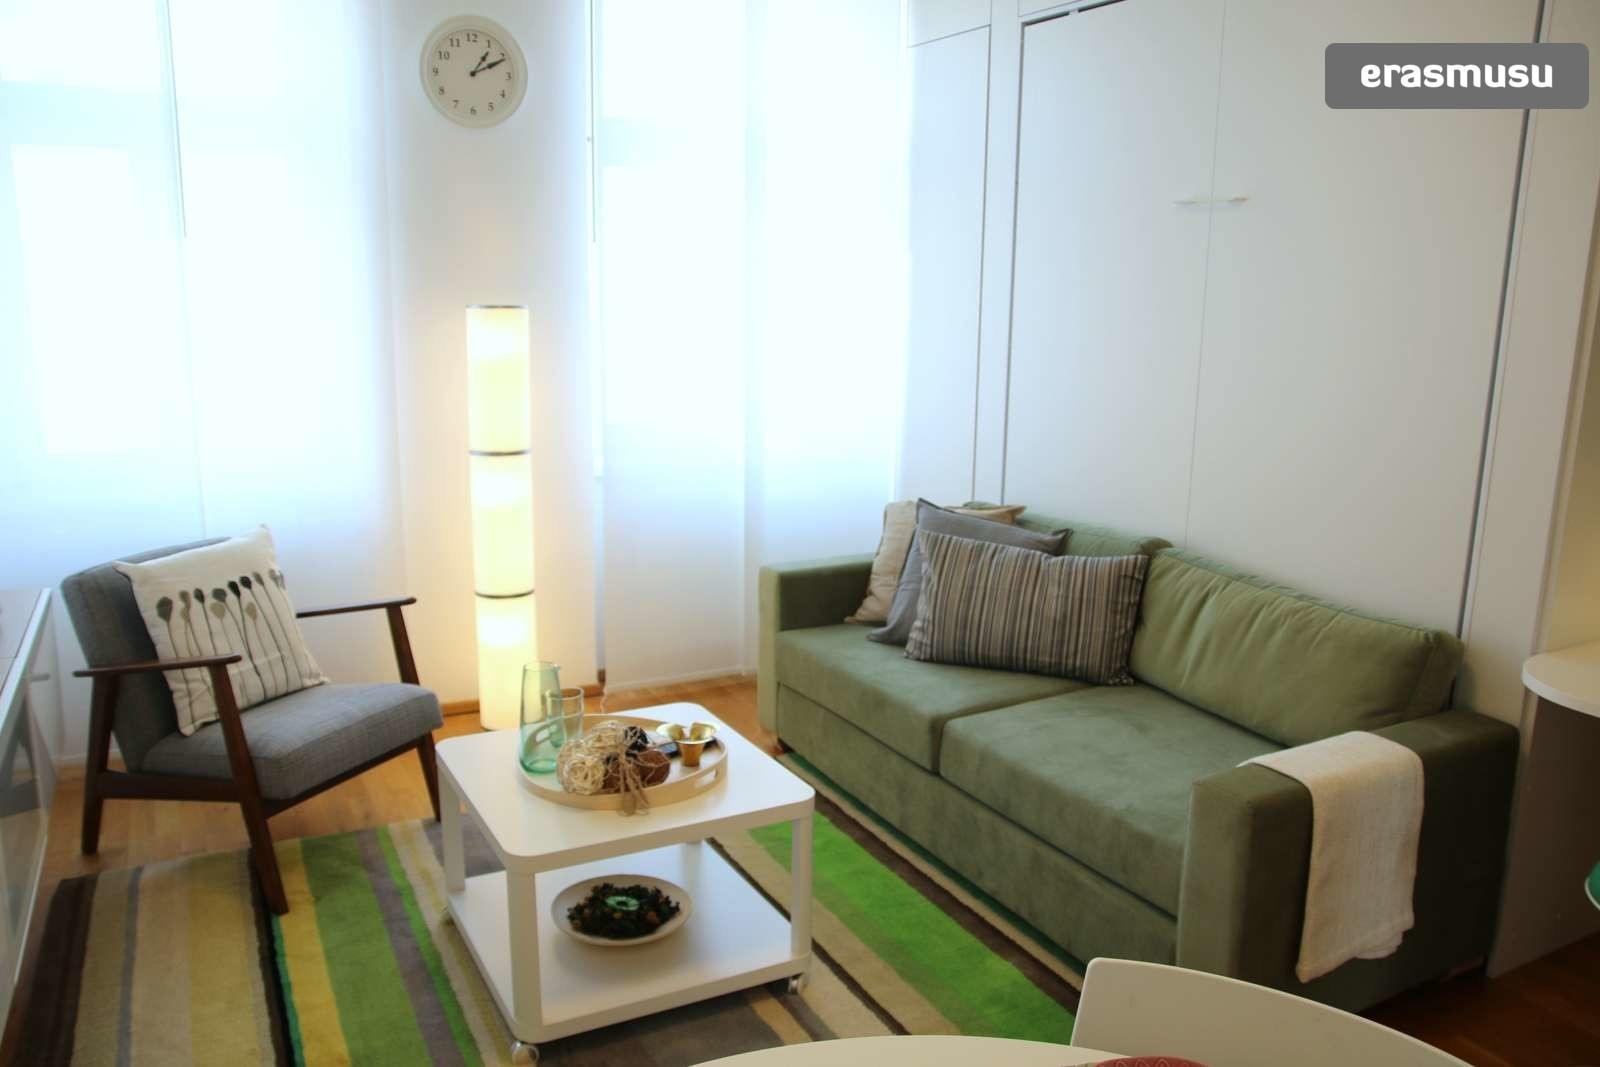 lovely-studio-apartment-rent-wahring-94411b42449aebb0ced2d1b38d3